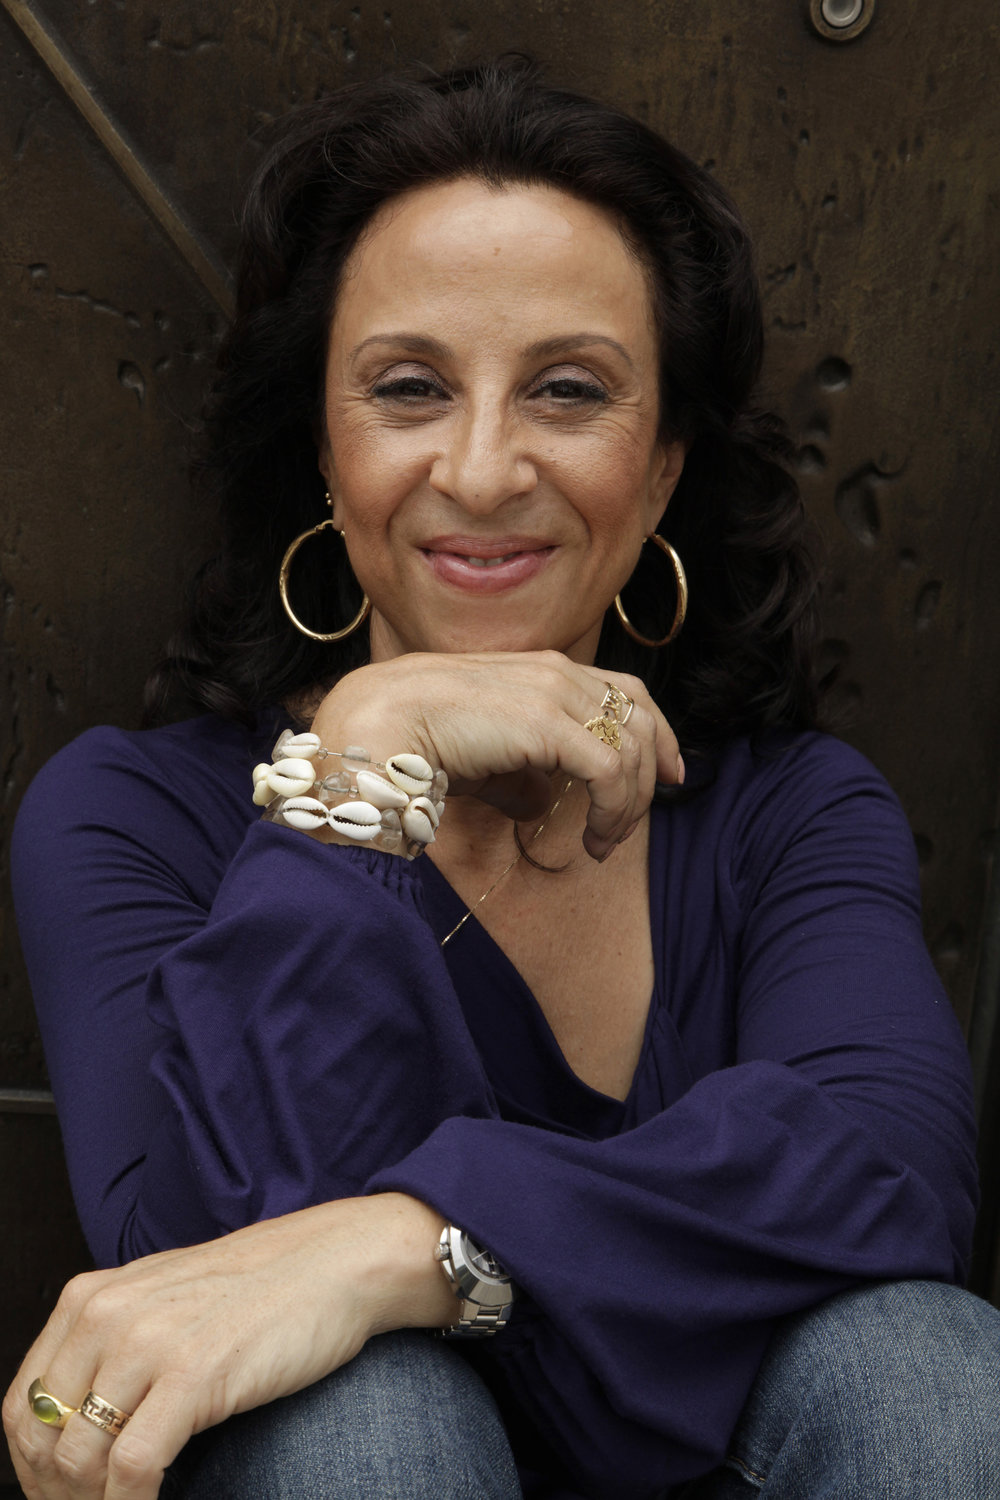 MARIA HINOJOSA - Maria Hinojosa is an award-winning news anchor and reporter as well as President and CEO of The Futuro Media Group, an independent nonprofit multimedia journalism organization which she created in 2010. As the anchor and Executive Producer of the NPR distributed Peabody Award winning show Latino USA, and anchor and Executive Producer of PBS's America By The Numbers with Maria Hinojosa, she has informed millions about the changing cultural and political landscape. In 2016, Hinojosa became the host of In The Thick, Futuro Media's political podcast, and Humanizing America, the company's digital video series that deconstructs stereotypes. Hinojosa's nearly 30-year history as an award- winning journalist includes reporting for PBS, CBS, WNBC, CNN, NPR, Frontline, and CBS Radio and anchoring the Emmy Award winning talk show Maria Hinojosa: One-on-One. Hinojosa is also a new contributor to the long running award-winning news program CBS Sunday Morning, and is a frequent guest on MSNBC.